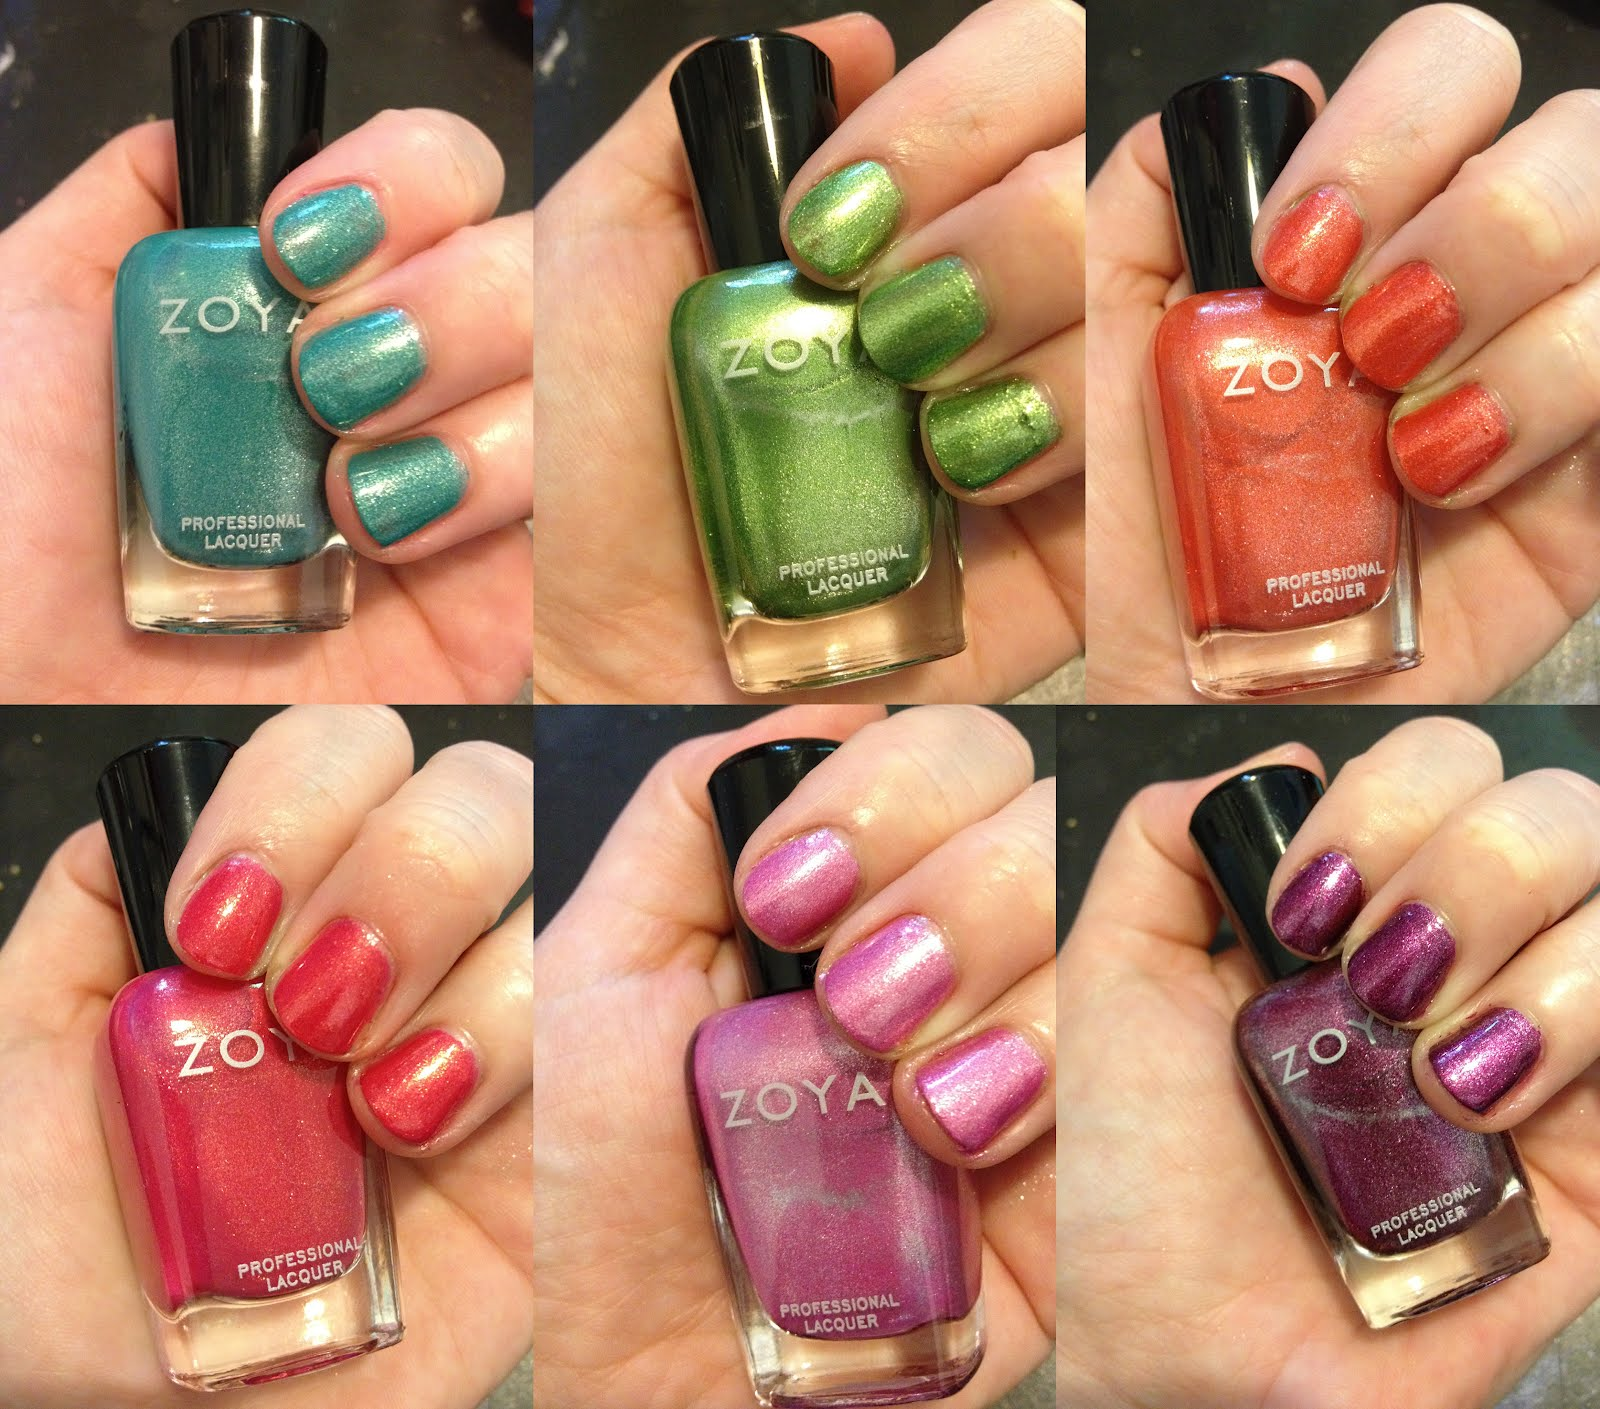 The Beauty of Life: Zoya Summer 2012 Surf Collection Swatches